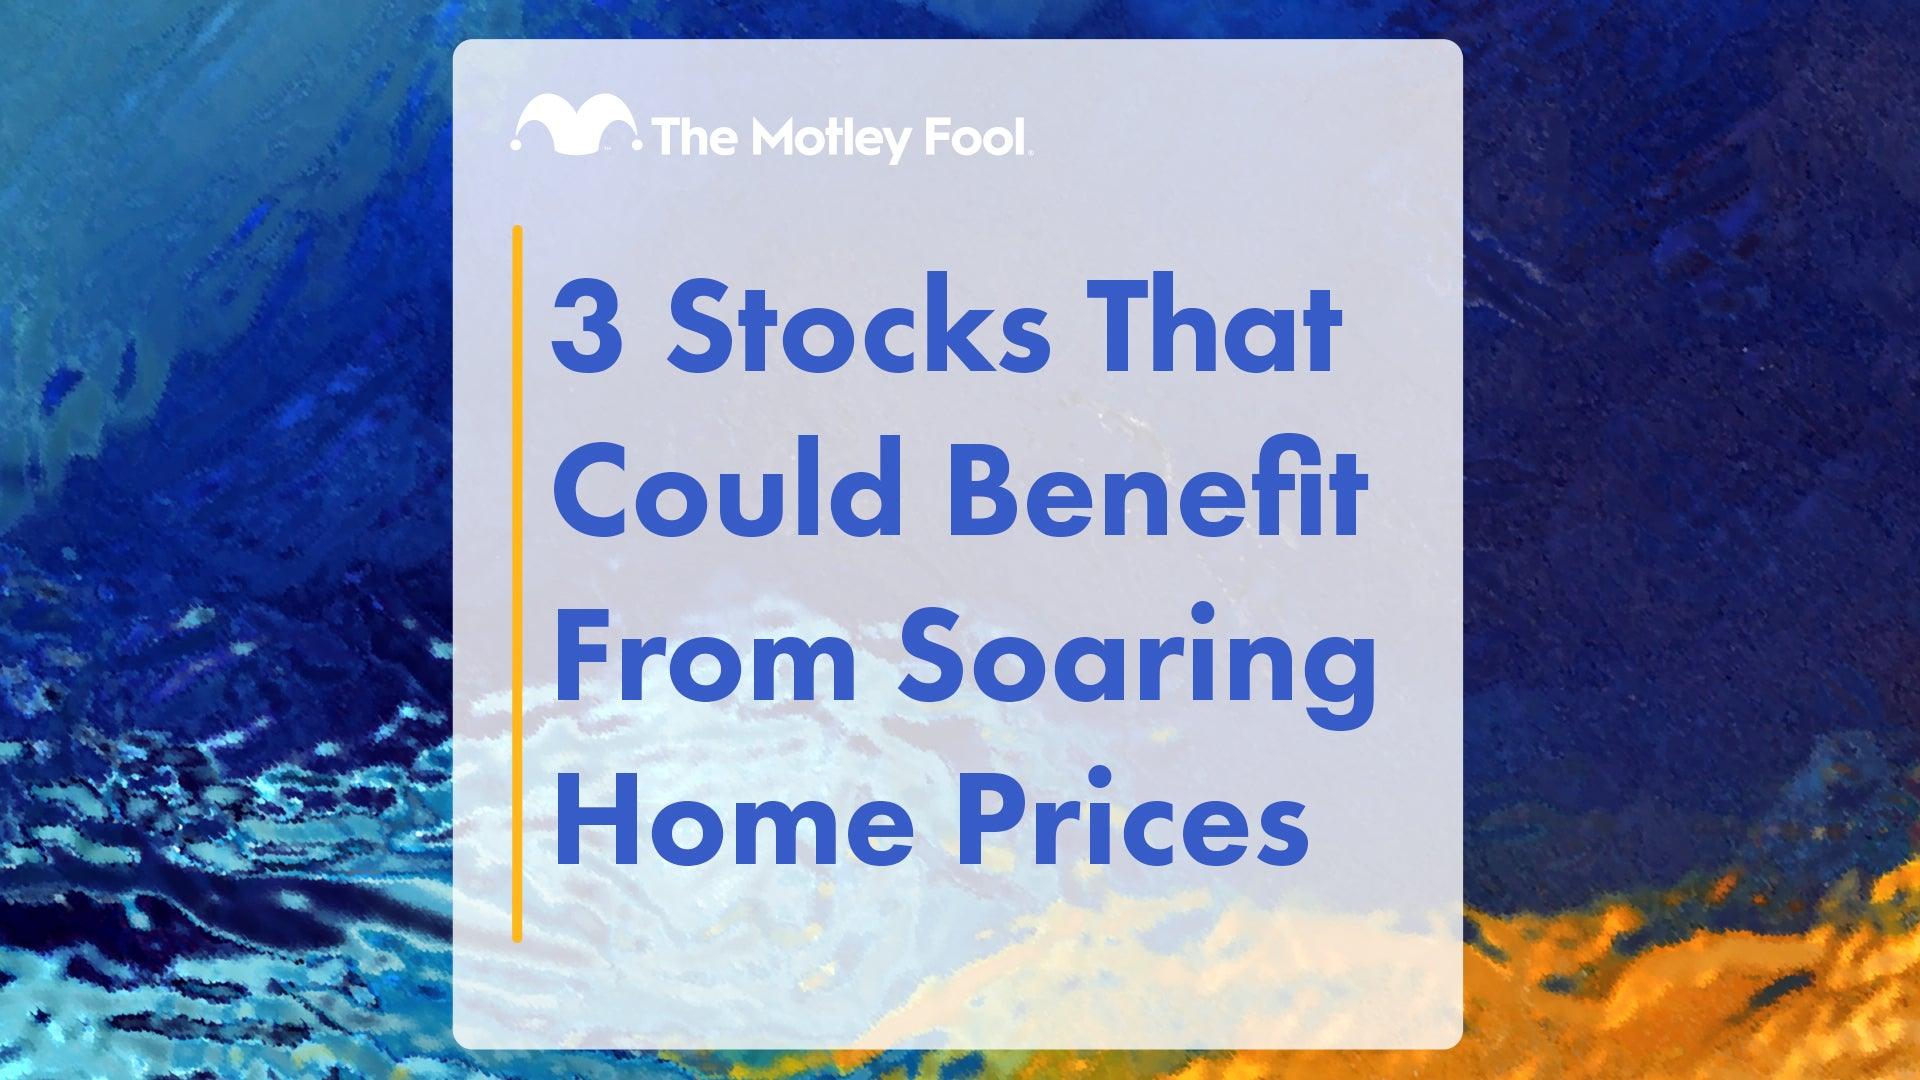 3 Stocks That Could Benefit From Soaring Home Prices